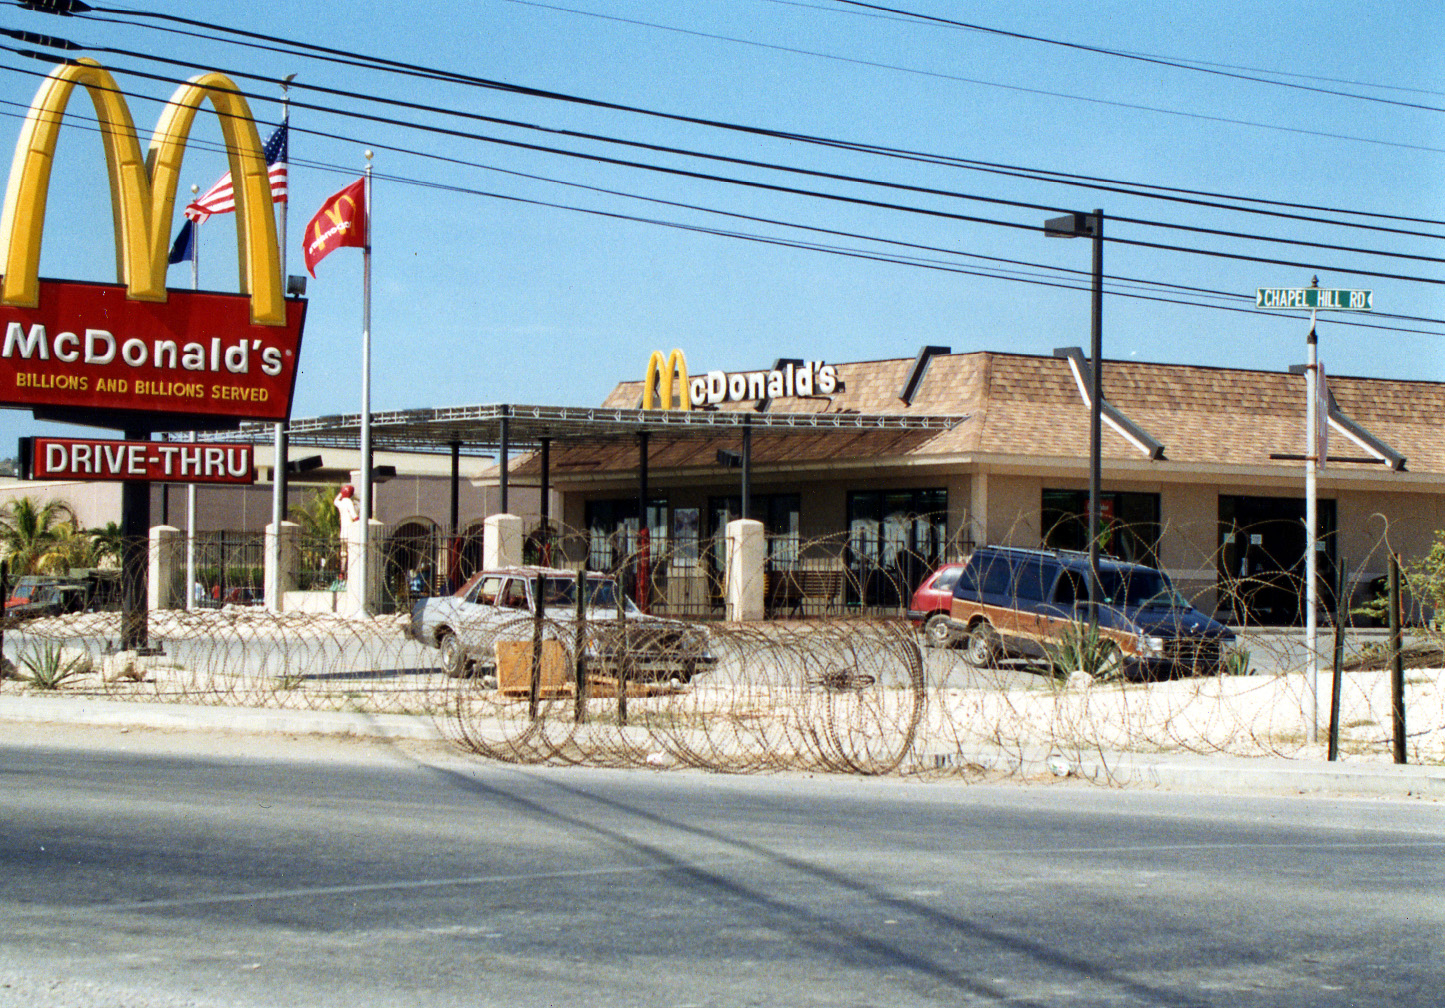 McDonald's surrounded by barbed wire